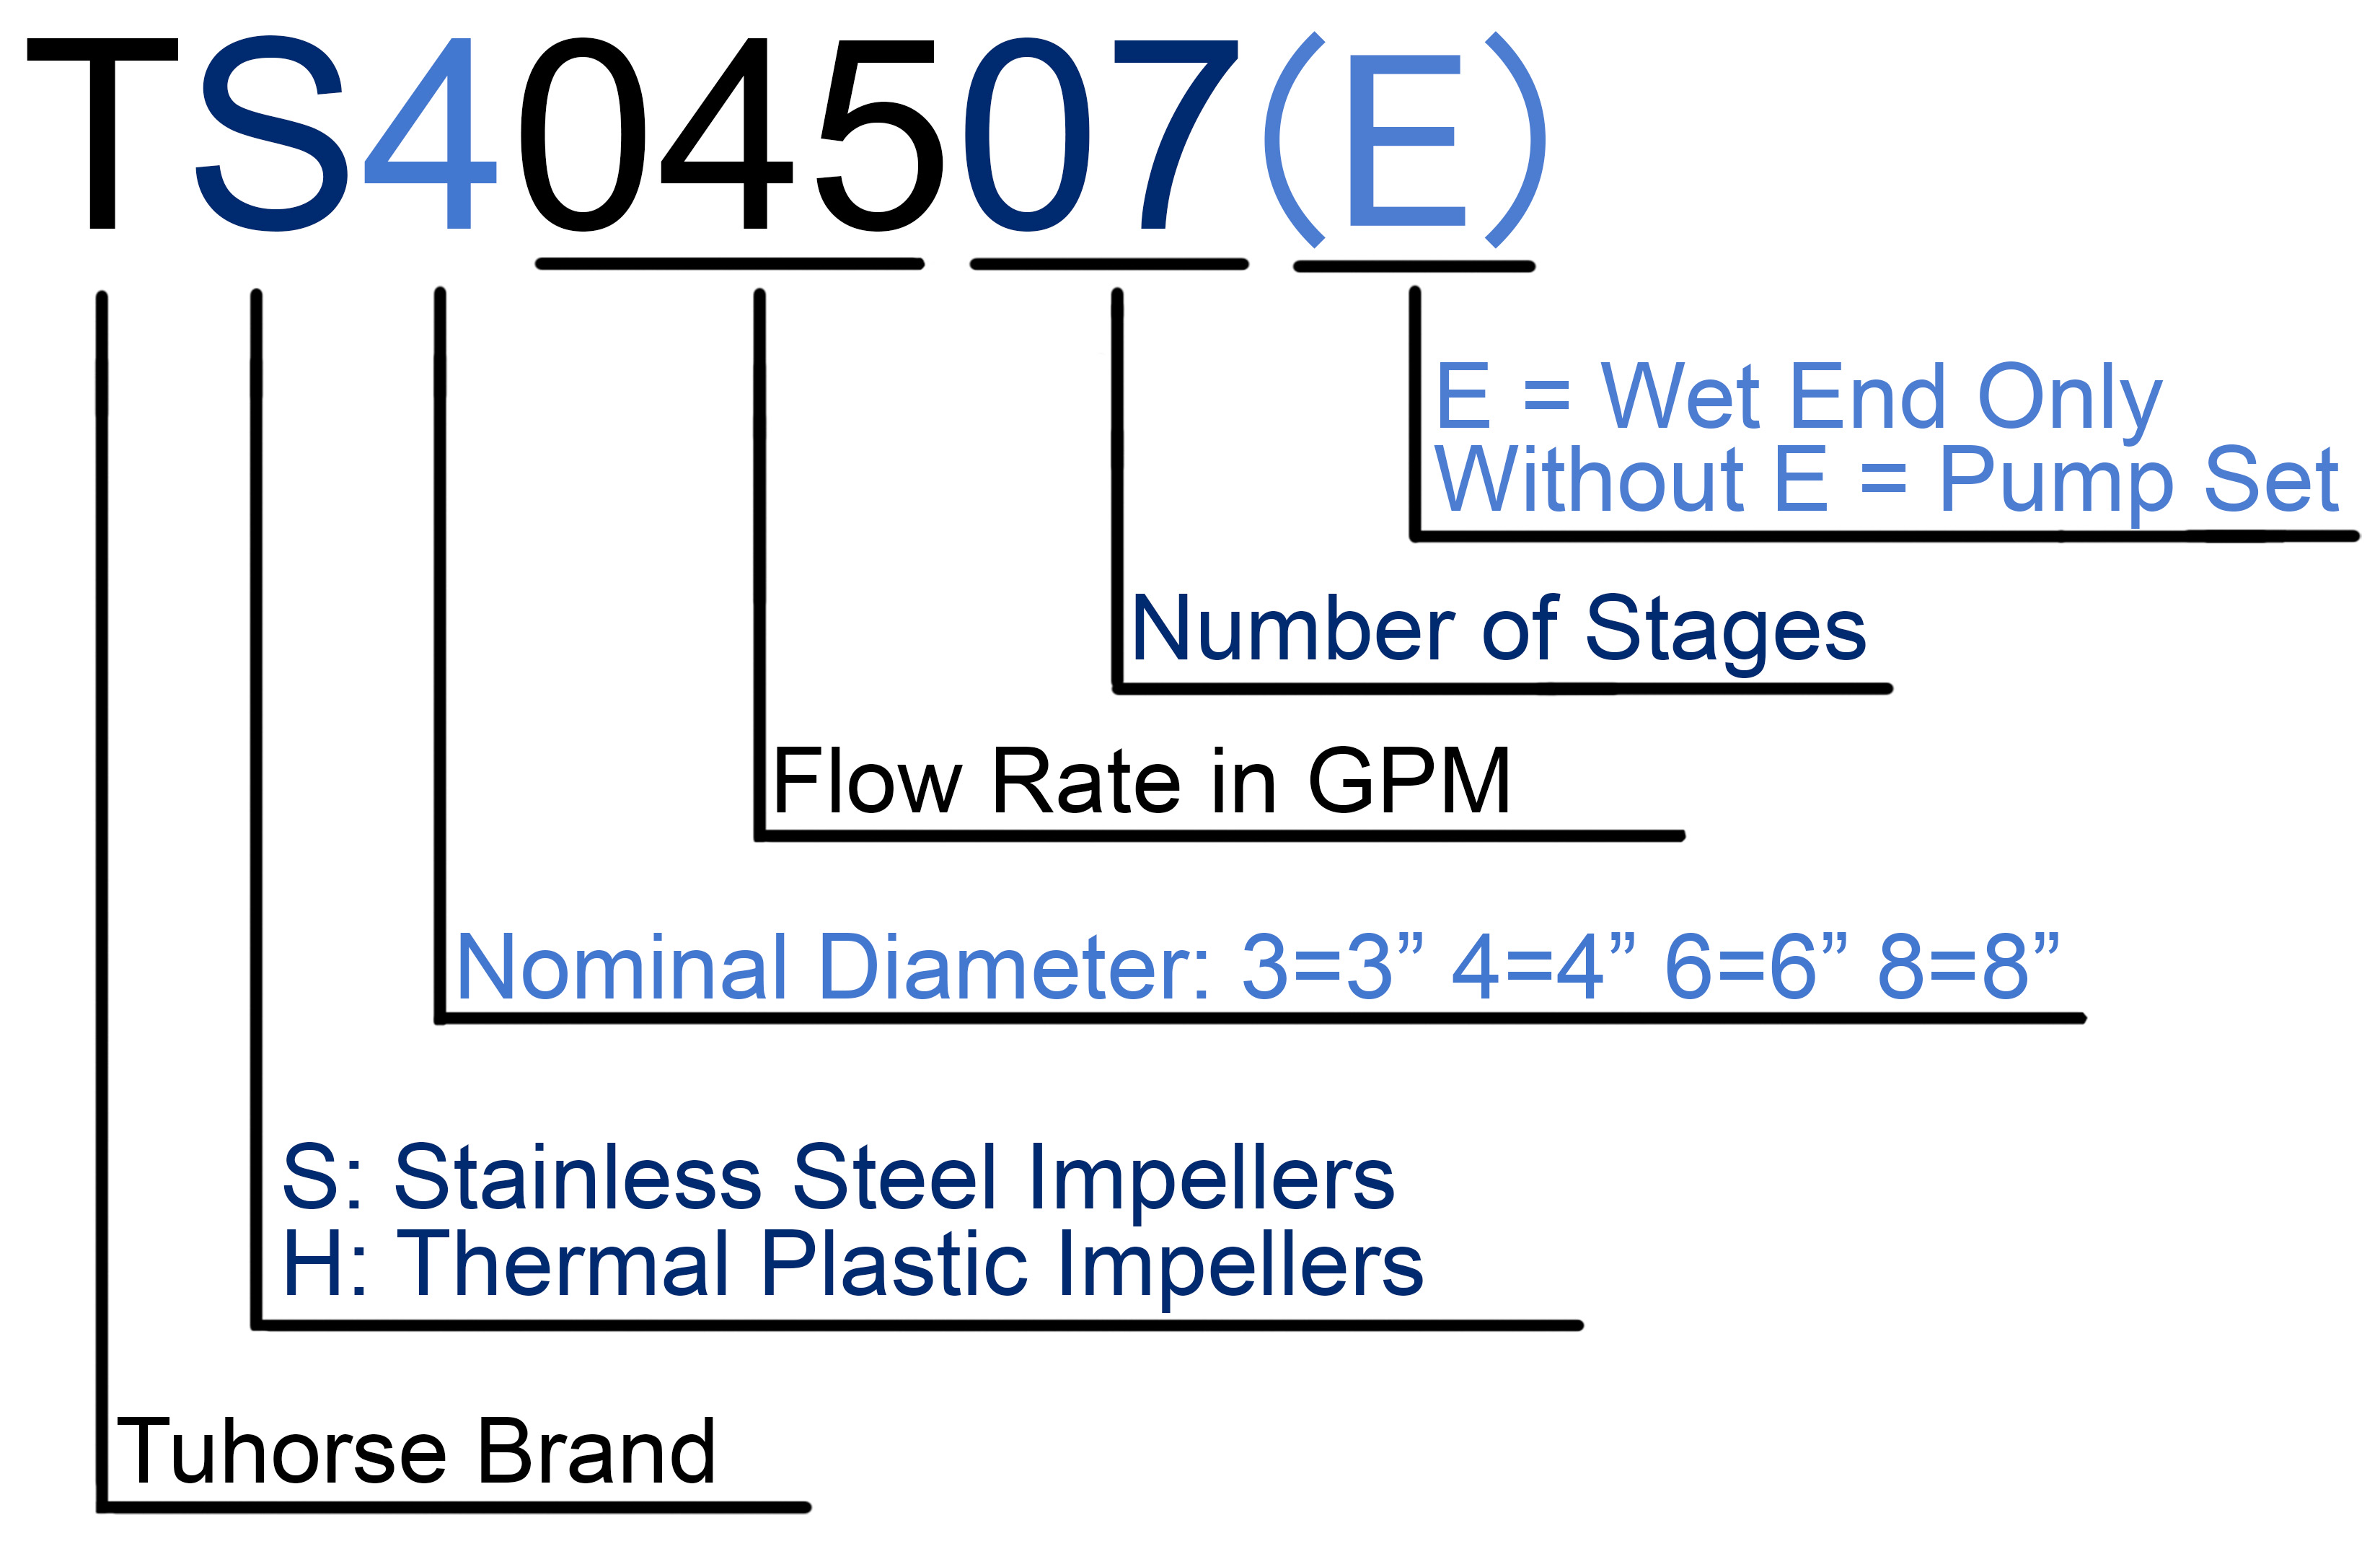 Reading Tuhorse pump end model numbers, tuhorse brand, stainless steel impellers, thermal plastic impellers, nominal diameter, 3inch, 4inch, 6inch, 8inch, 10inch, flow rate GPM,